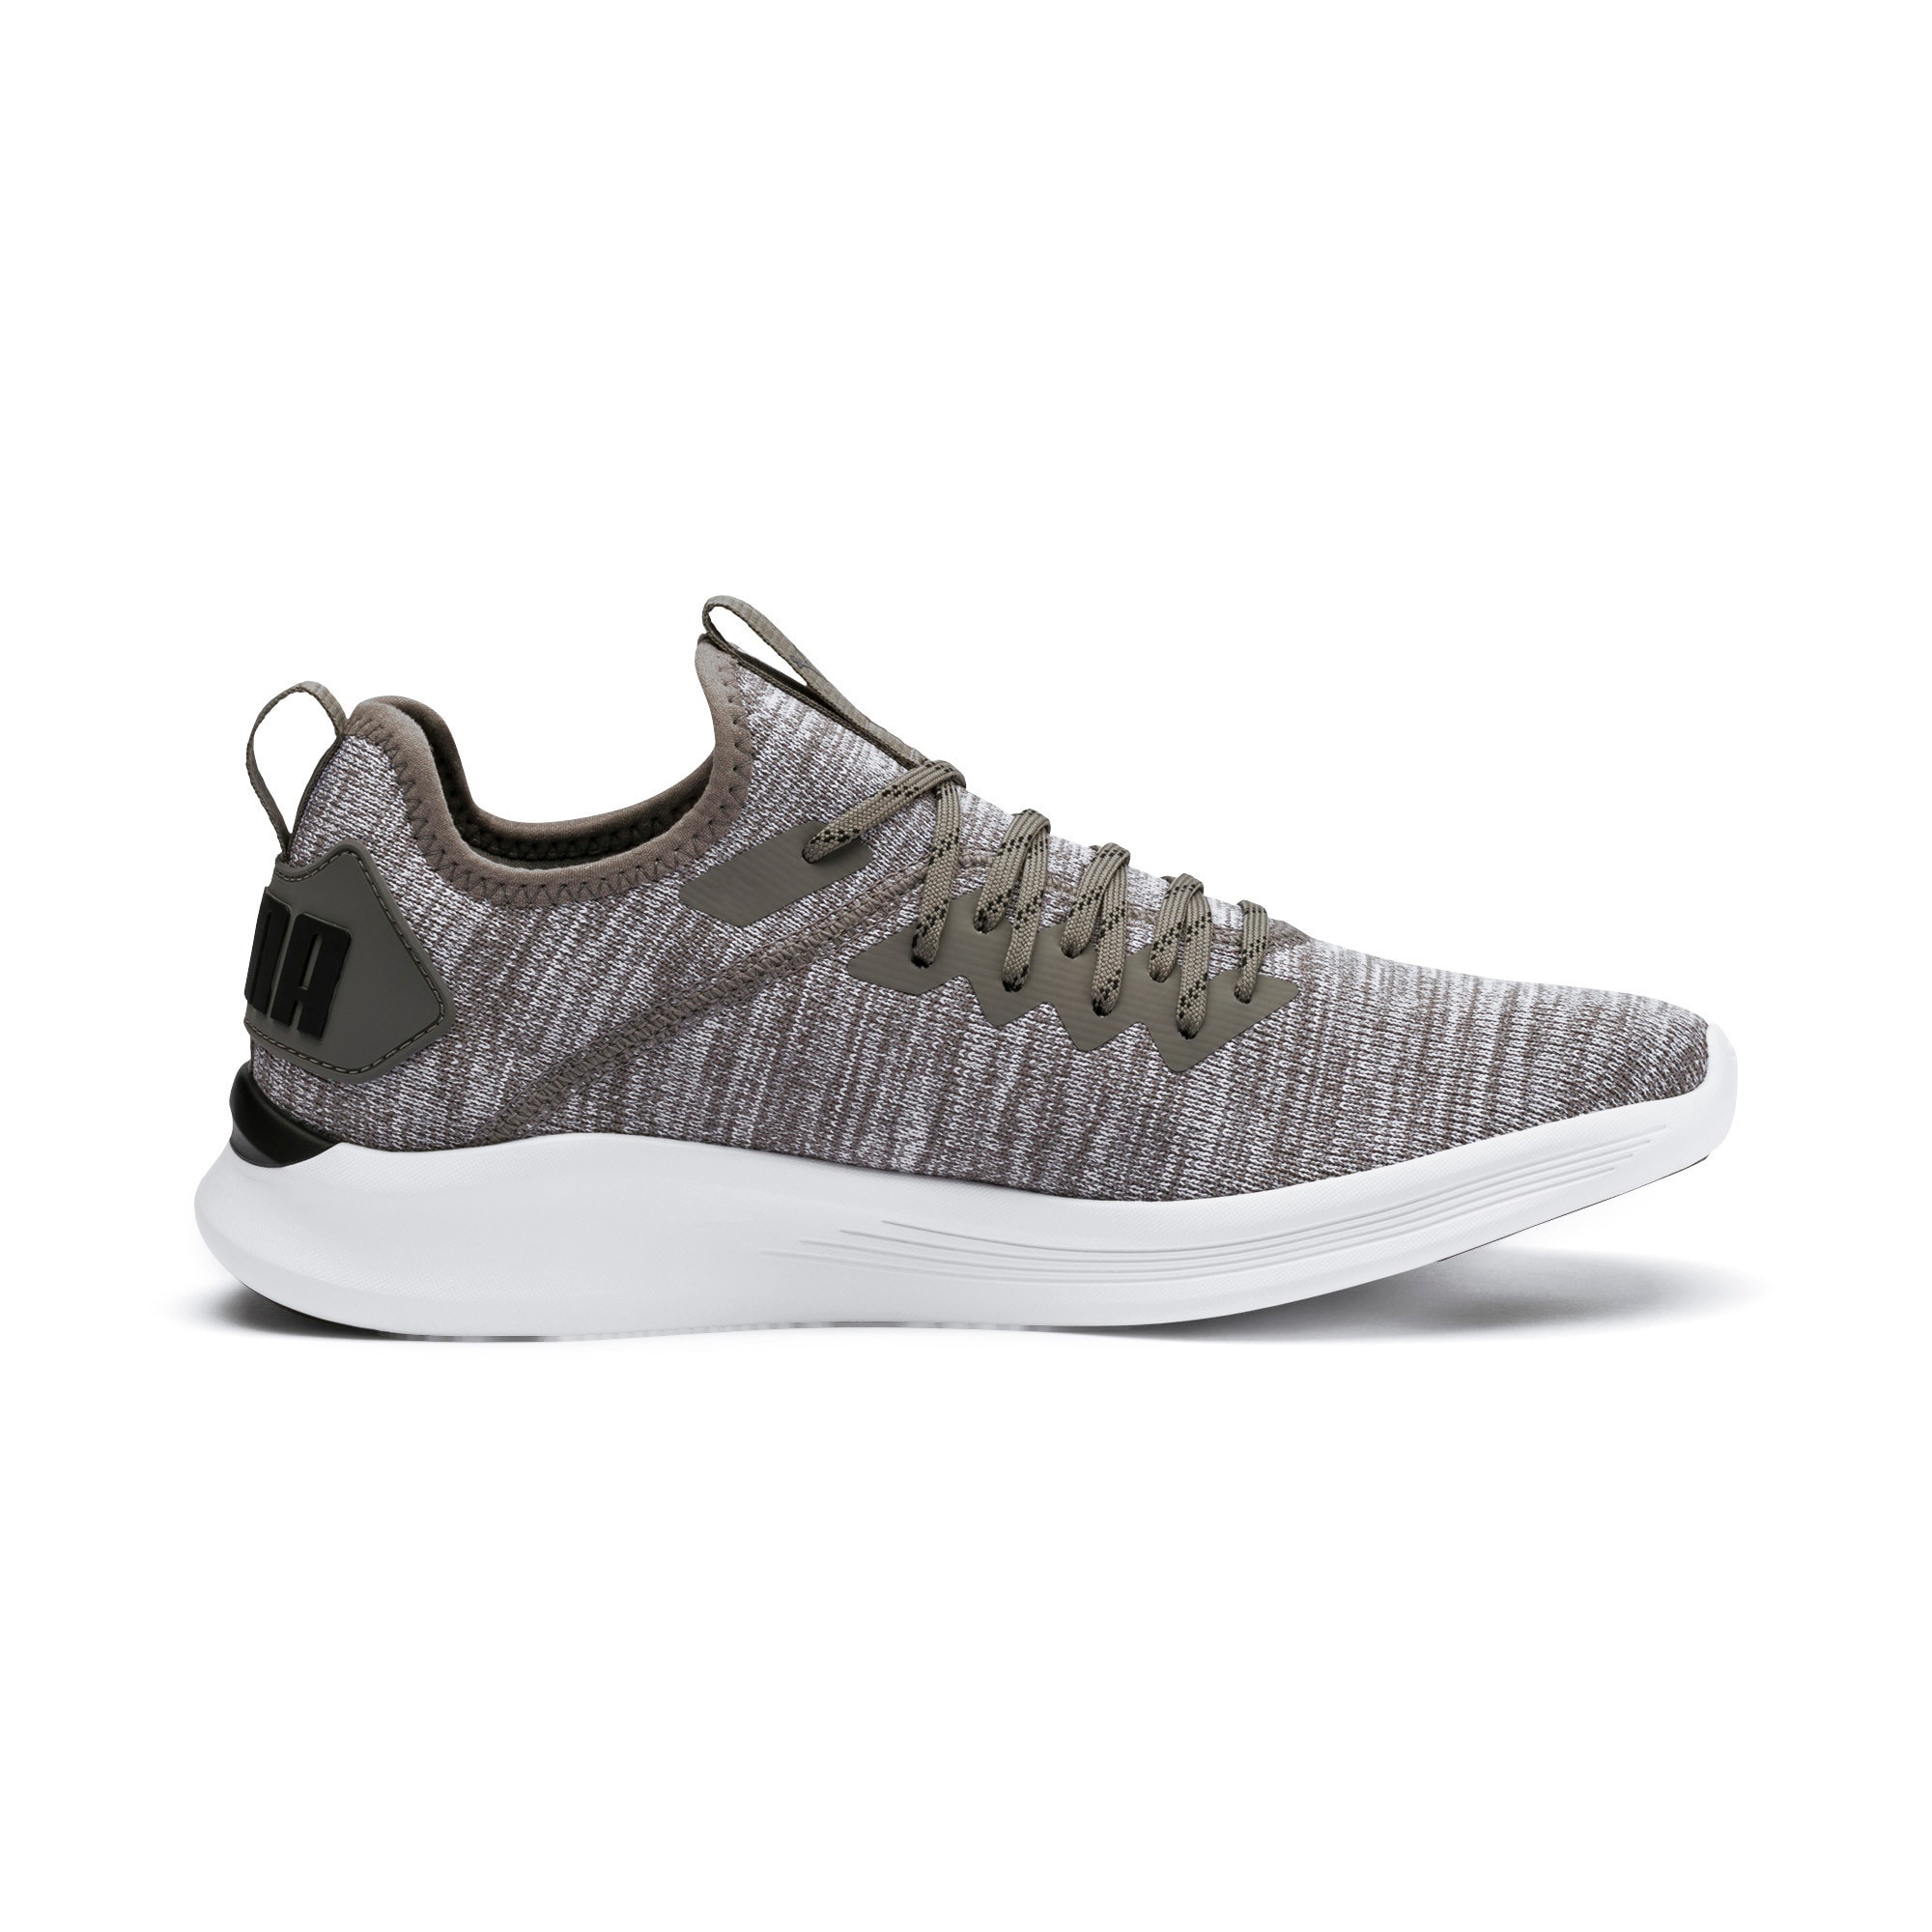 Thumbnail 7 of IGNITE Flash evoKNIT Men's Training Shoes, Steel Gray-Puma Black, medium-IND